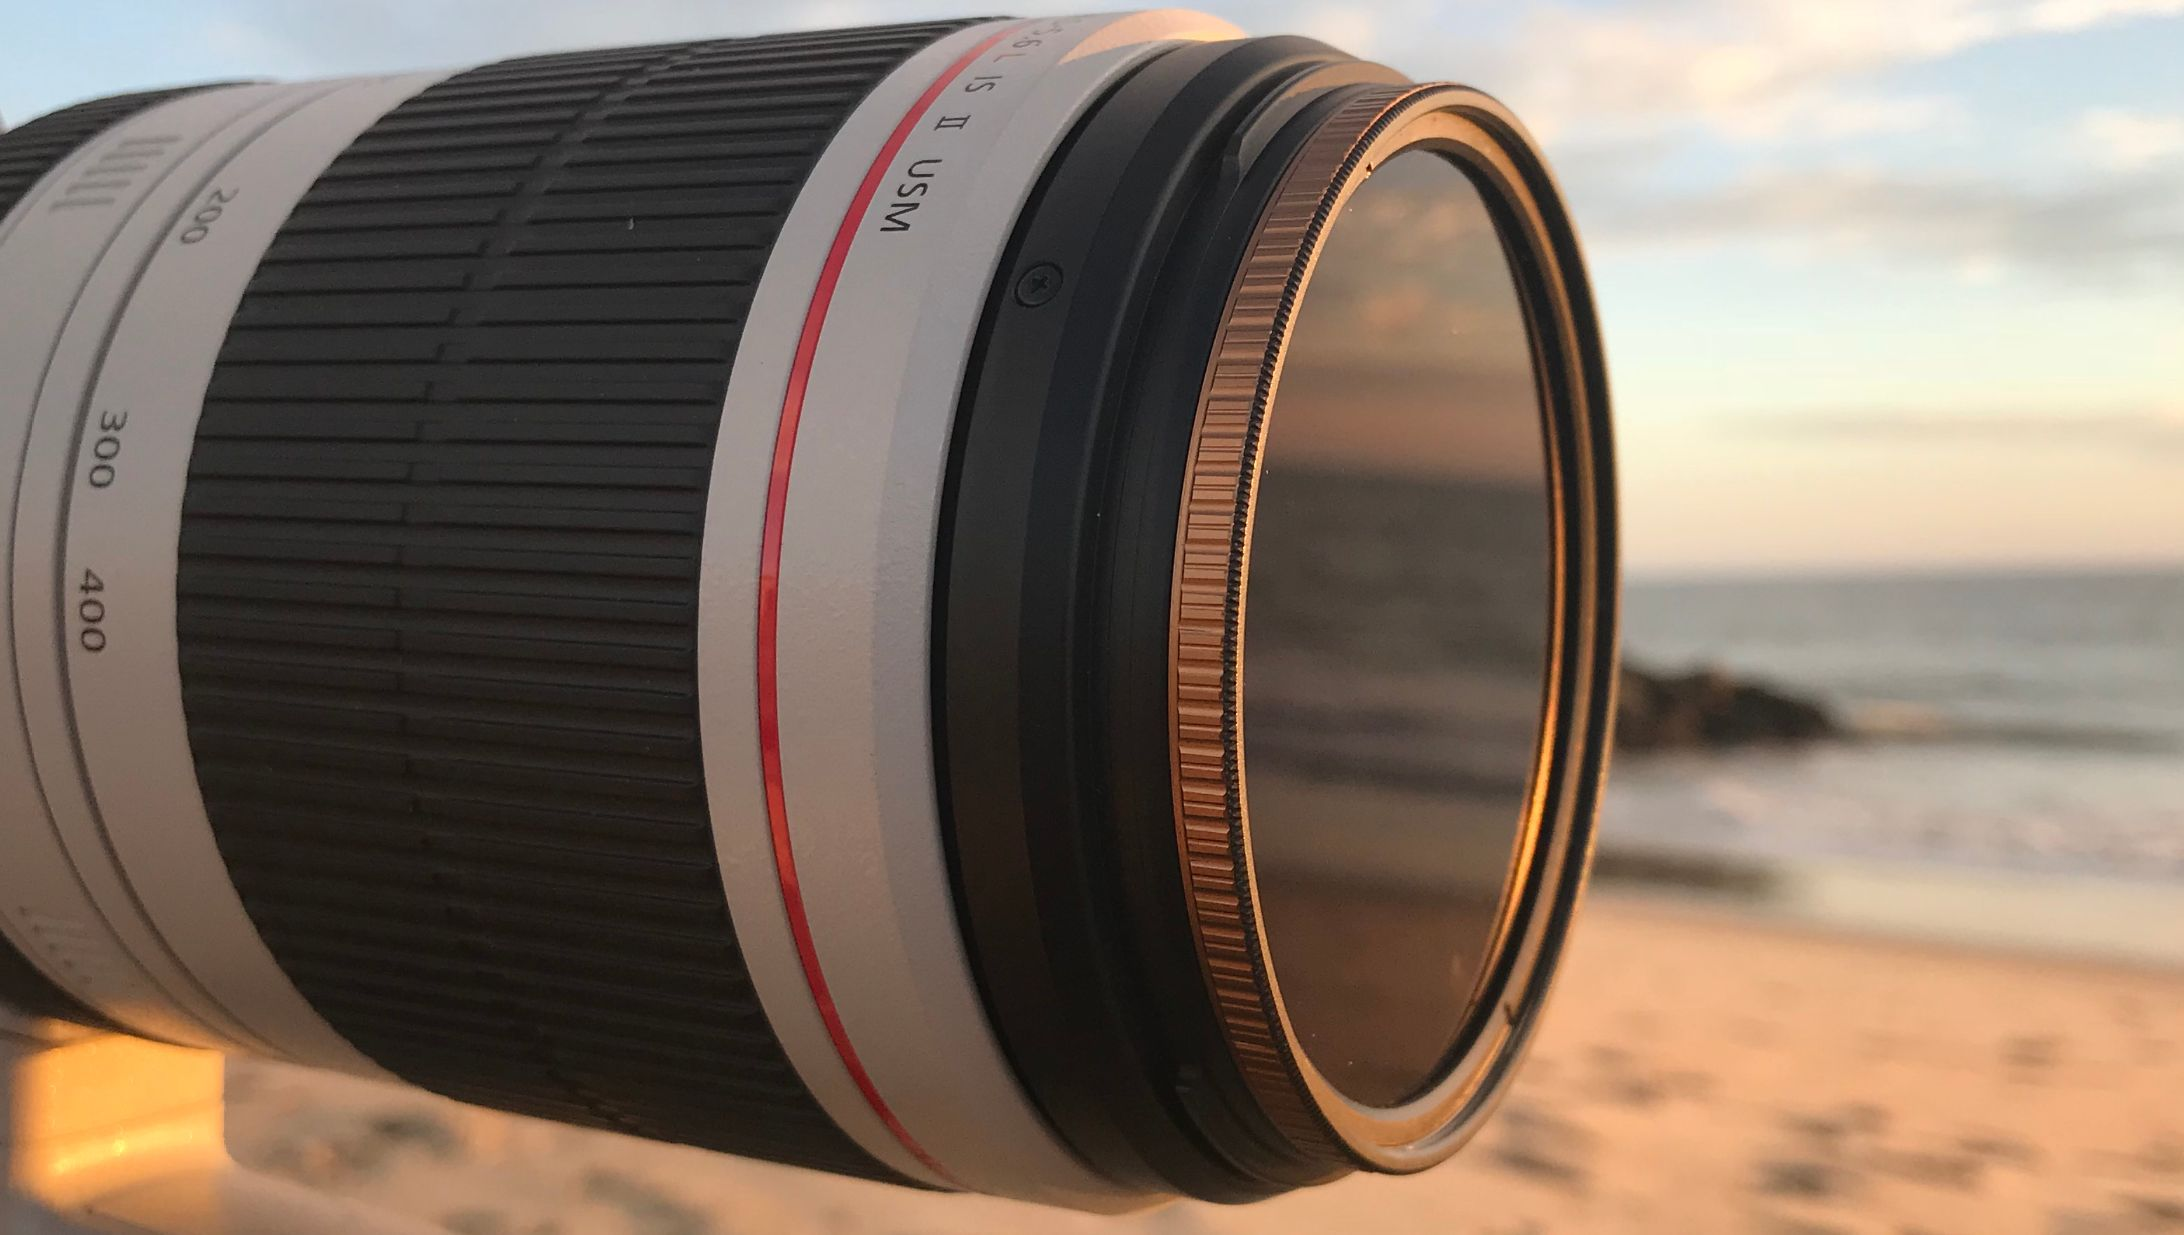 Best ND Filter and related settings for Landscape Photography - Circular Filter